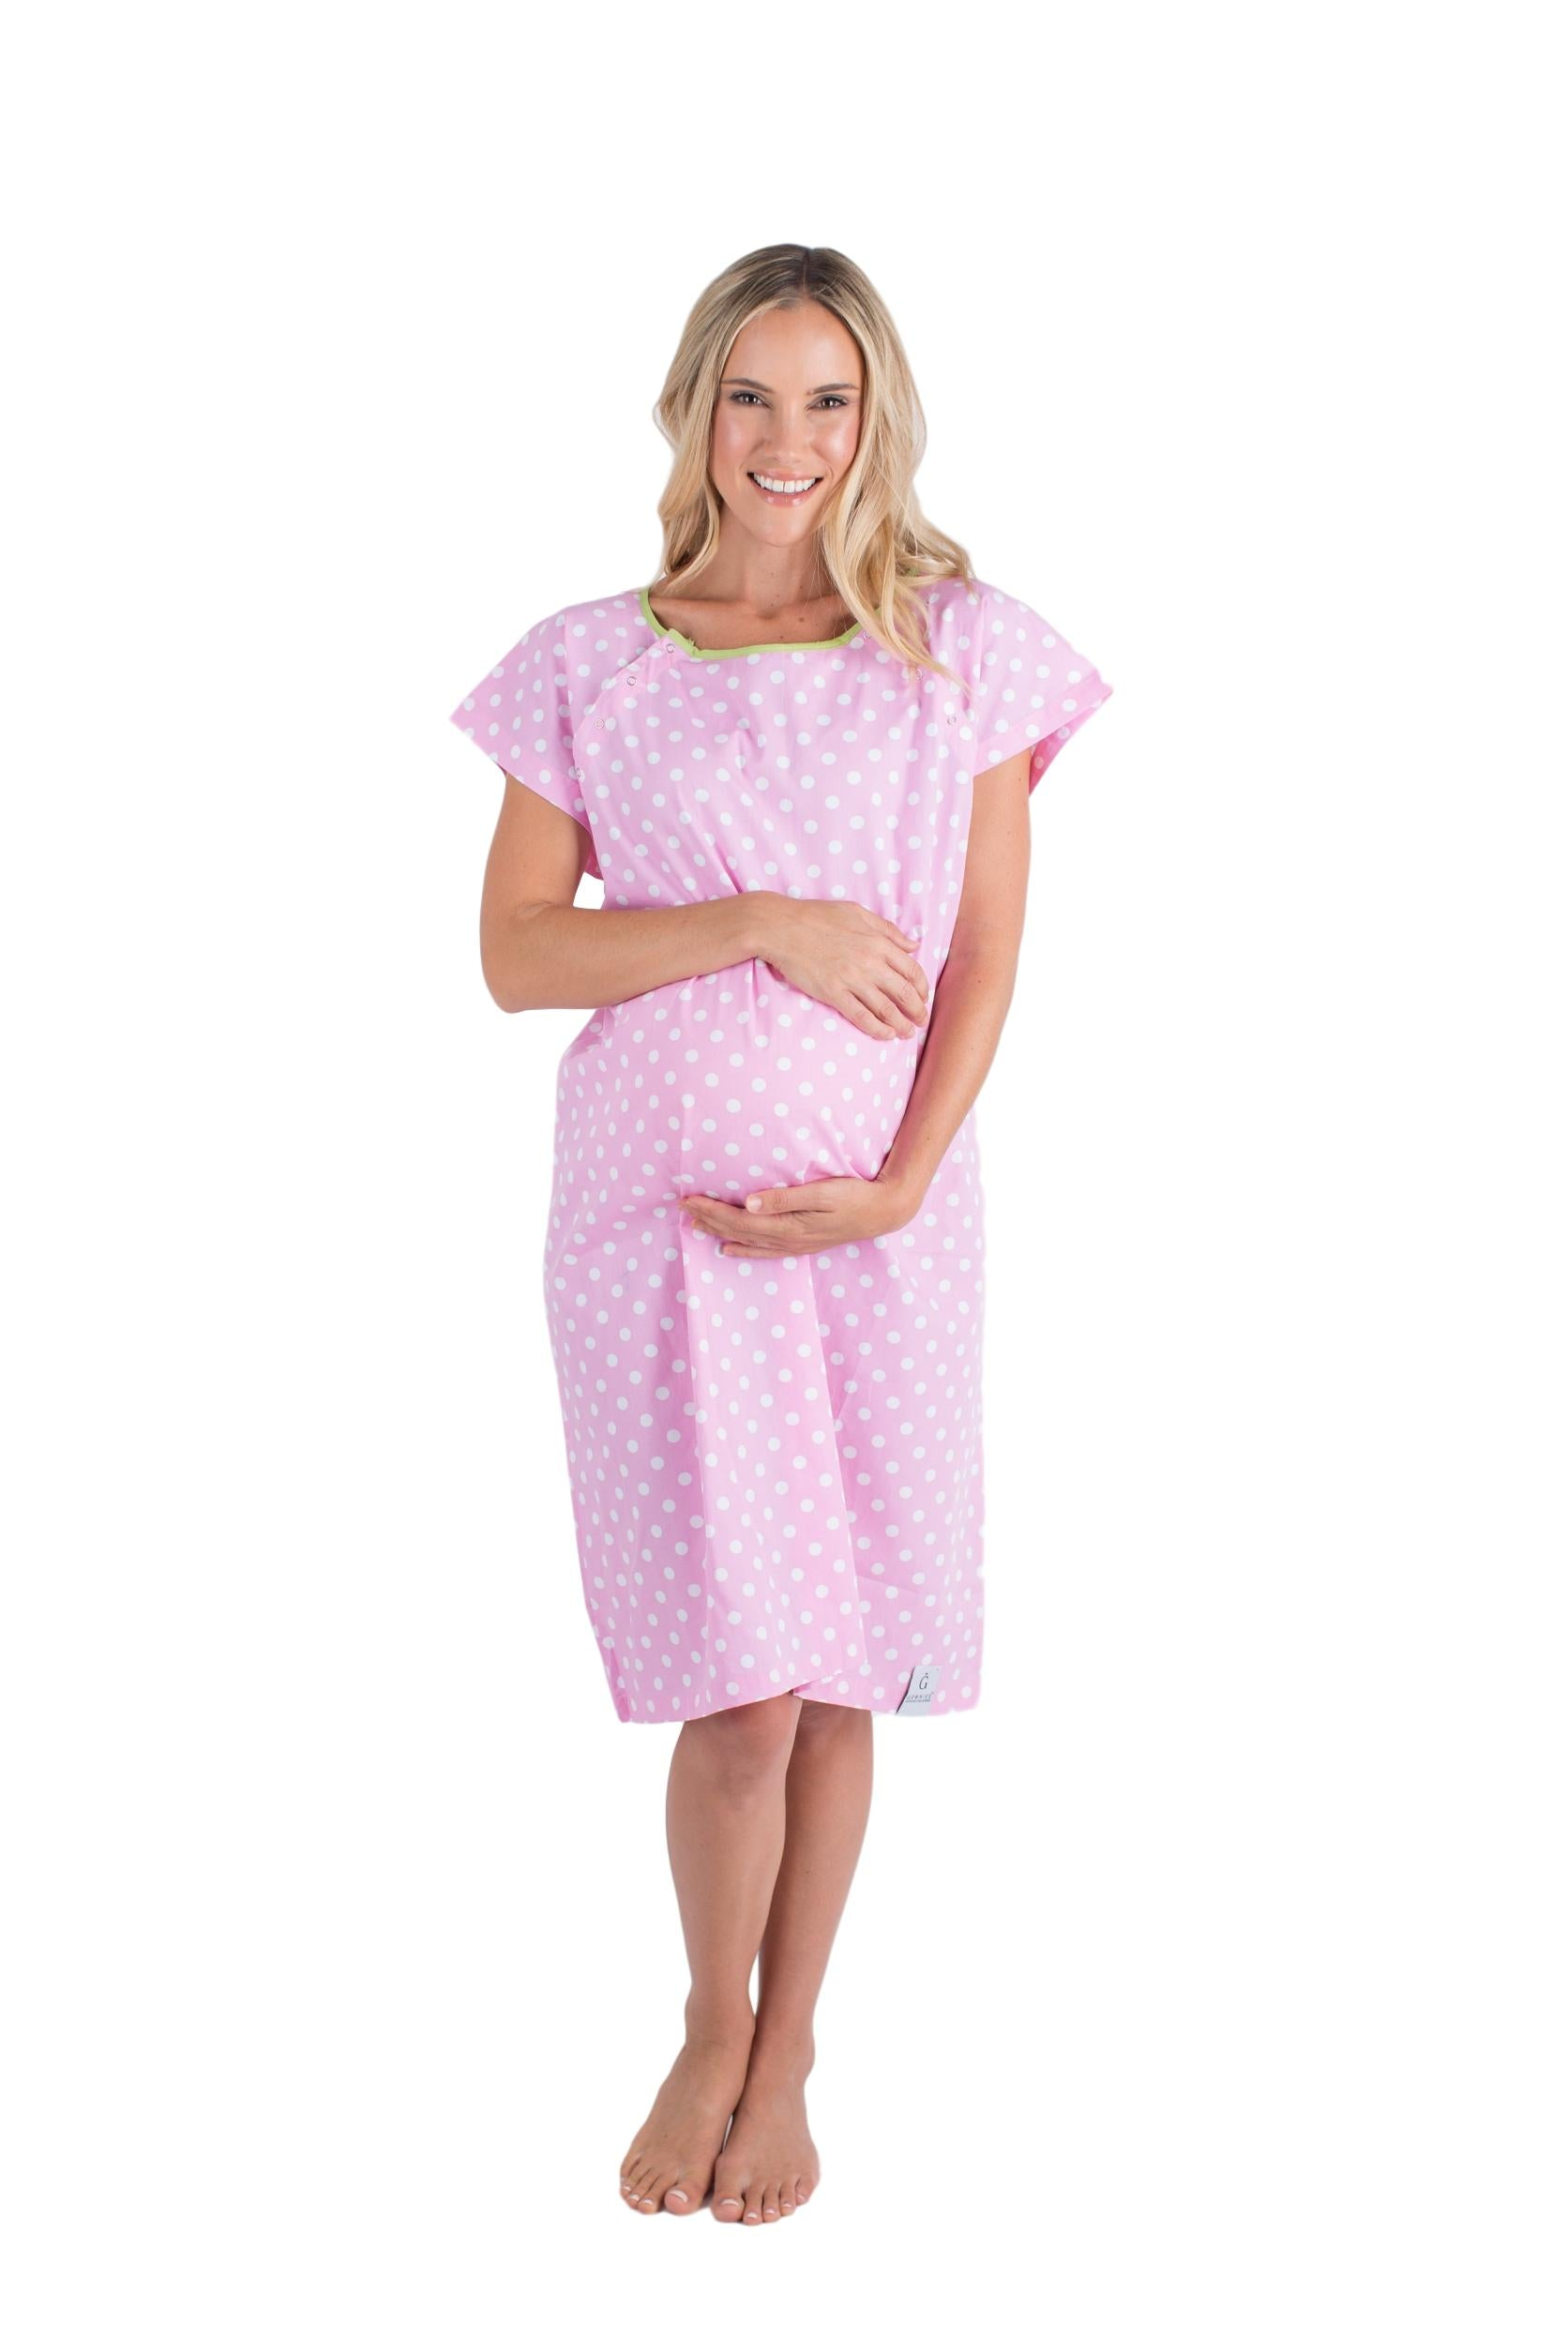 Molly Pink Dotted Maternity Delivery Hospital Gown Gownie & Delivery Robe Set